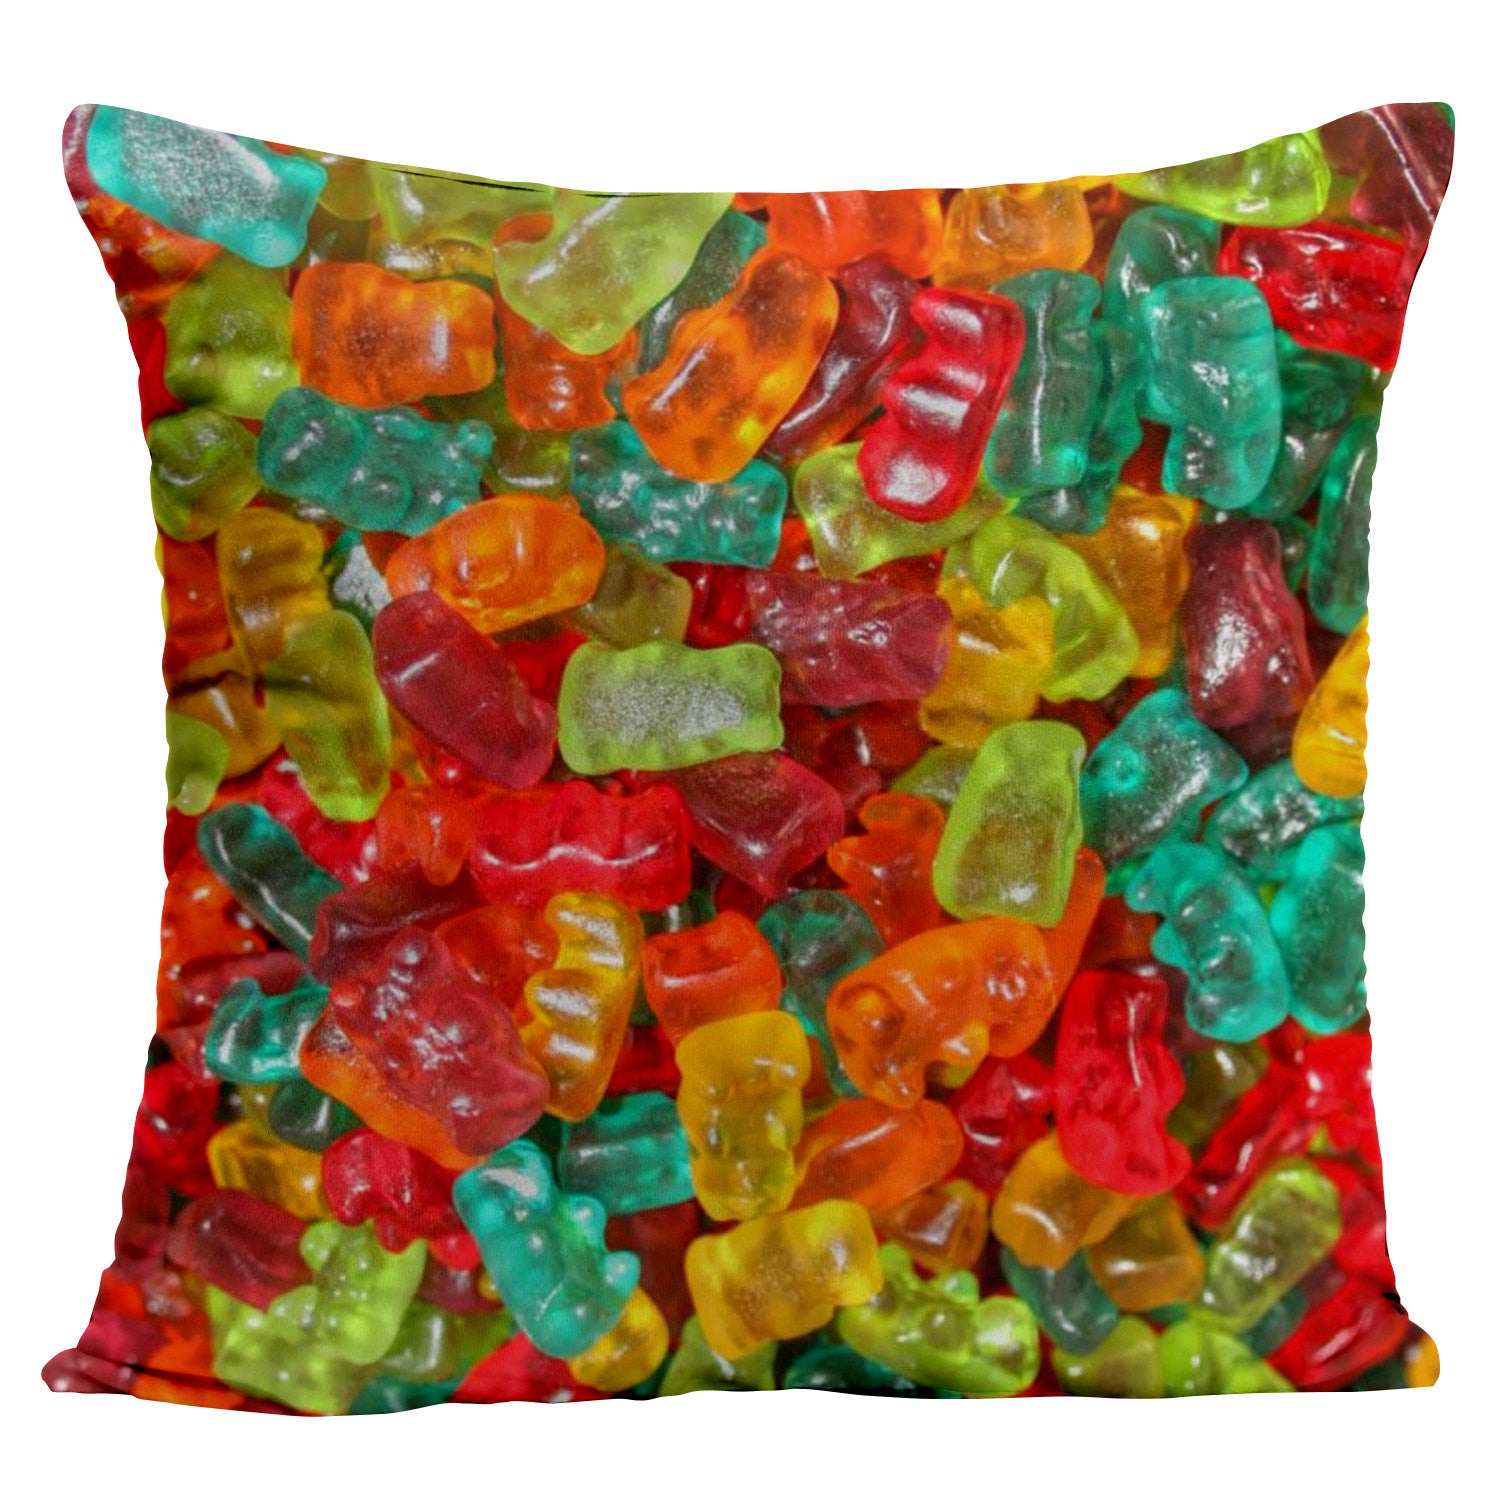 Gummy Bears Pillow - Shweeet